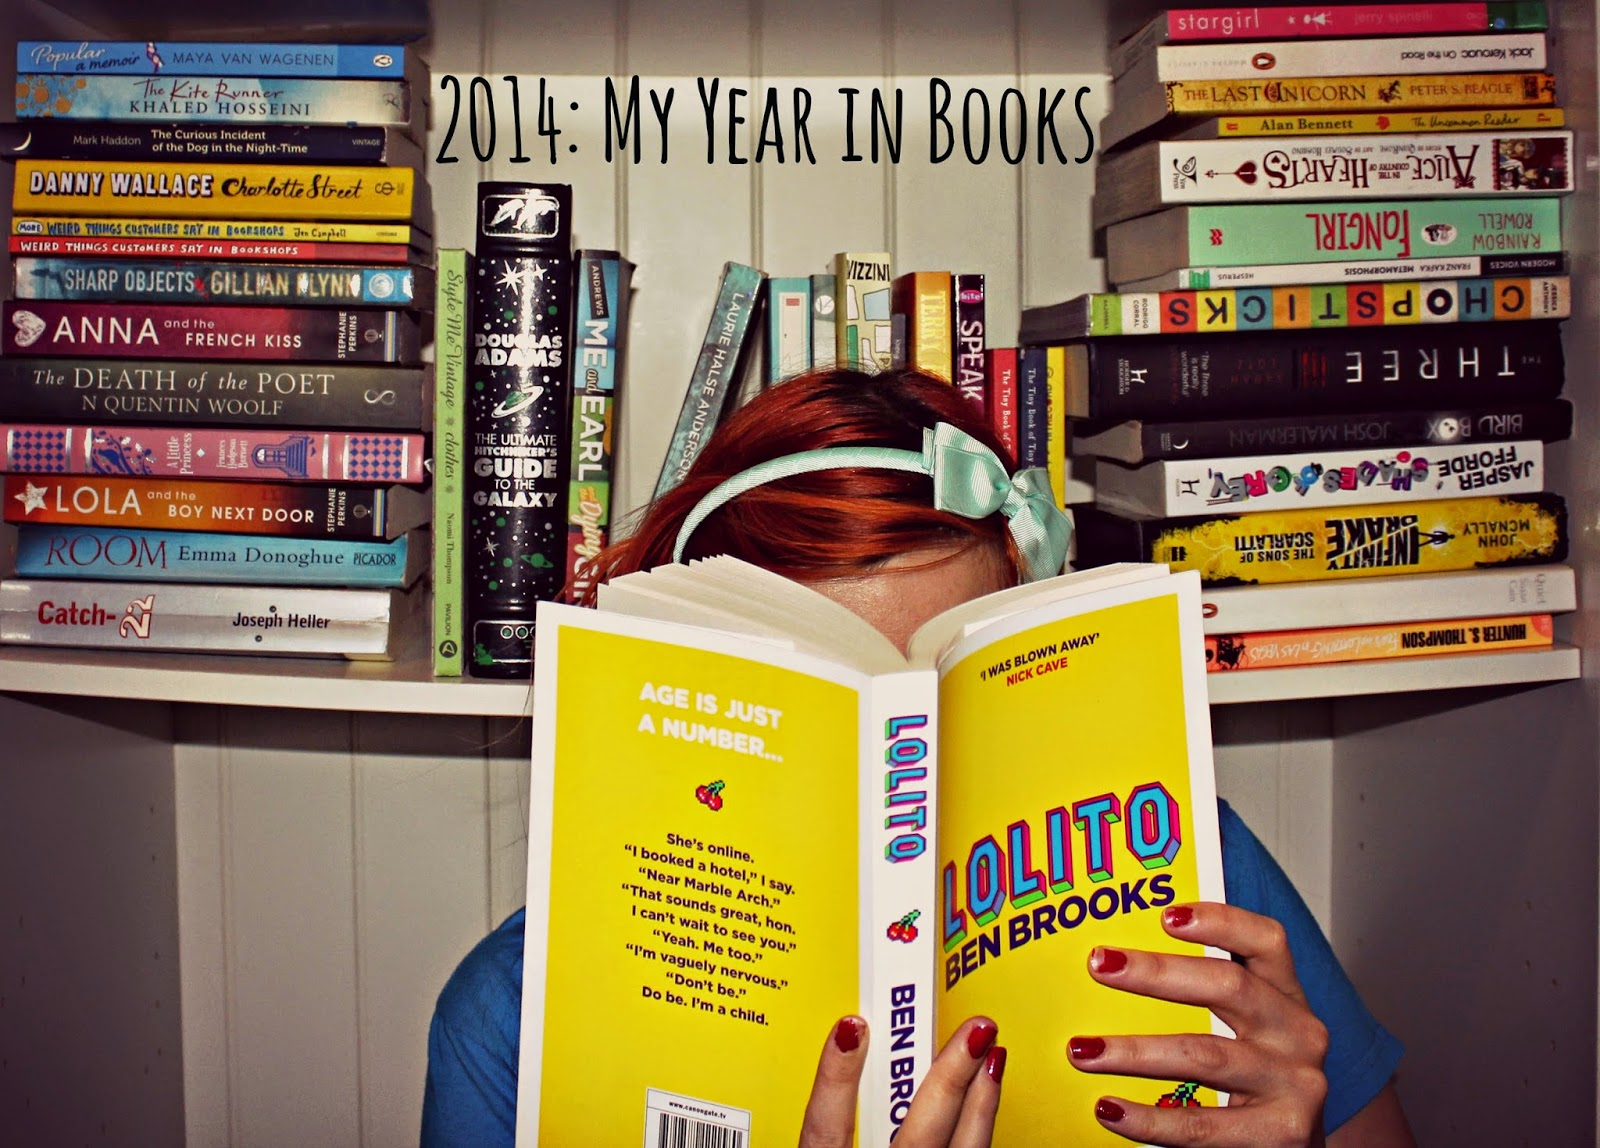 2014: My Goodreads year in books!